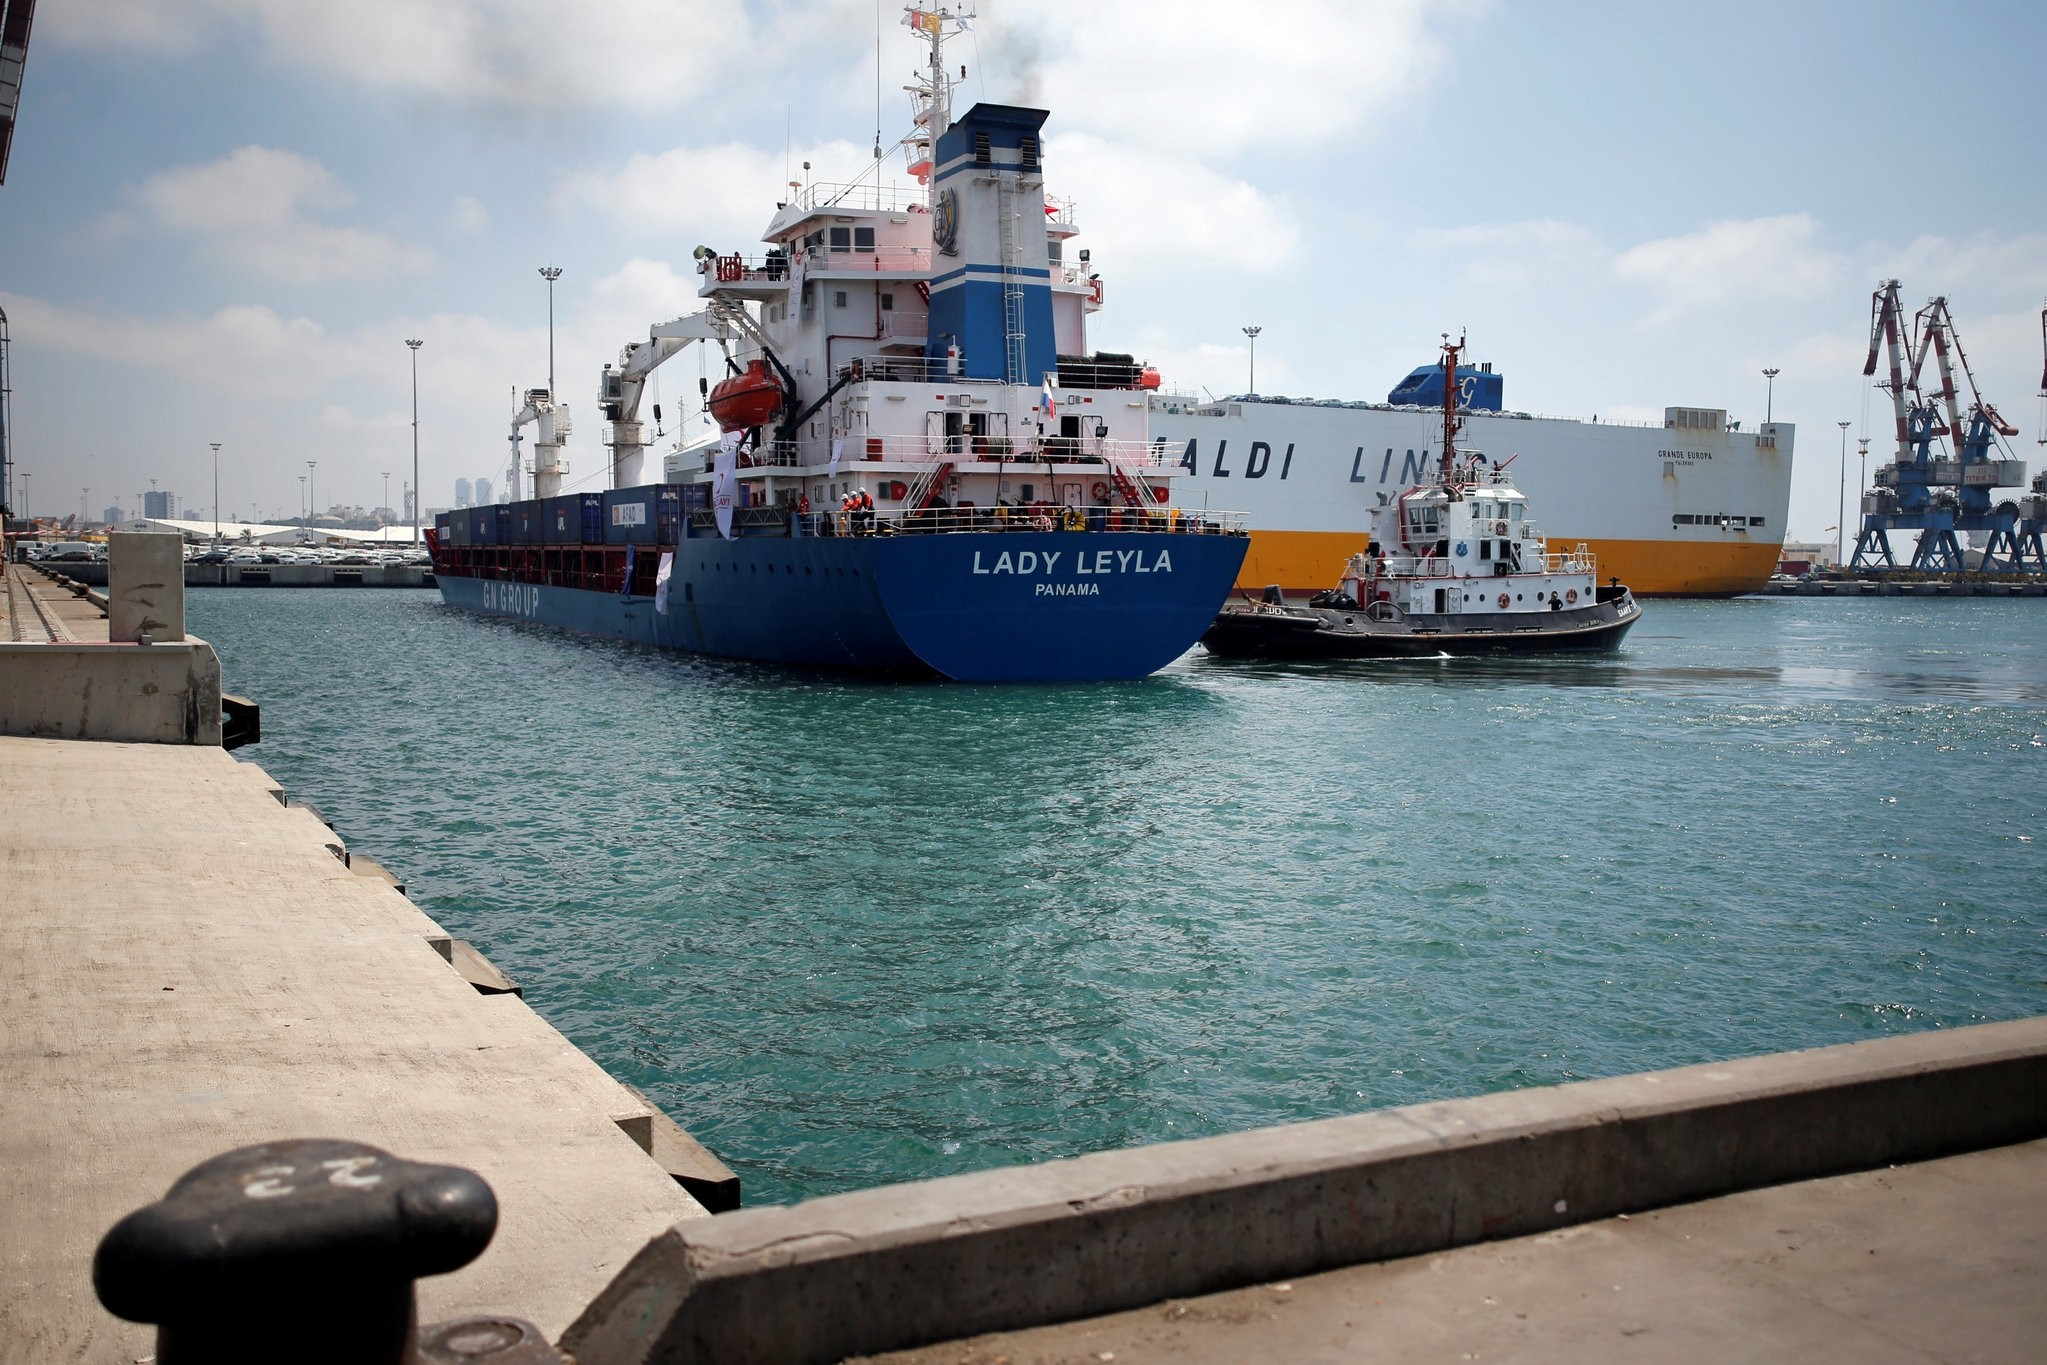 The Panama-flagged Lady Leyla, a Turkish ship carrying humanitarian aid to Gaza, enters Ashdod port, in southern Israel July 3, 2016. (REUTERS Photo)